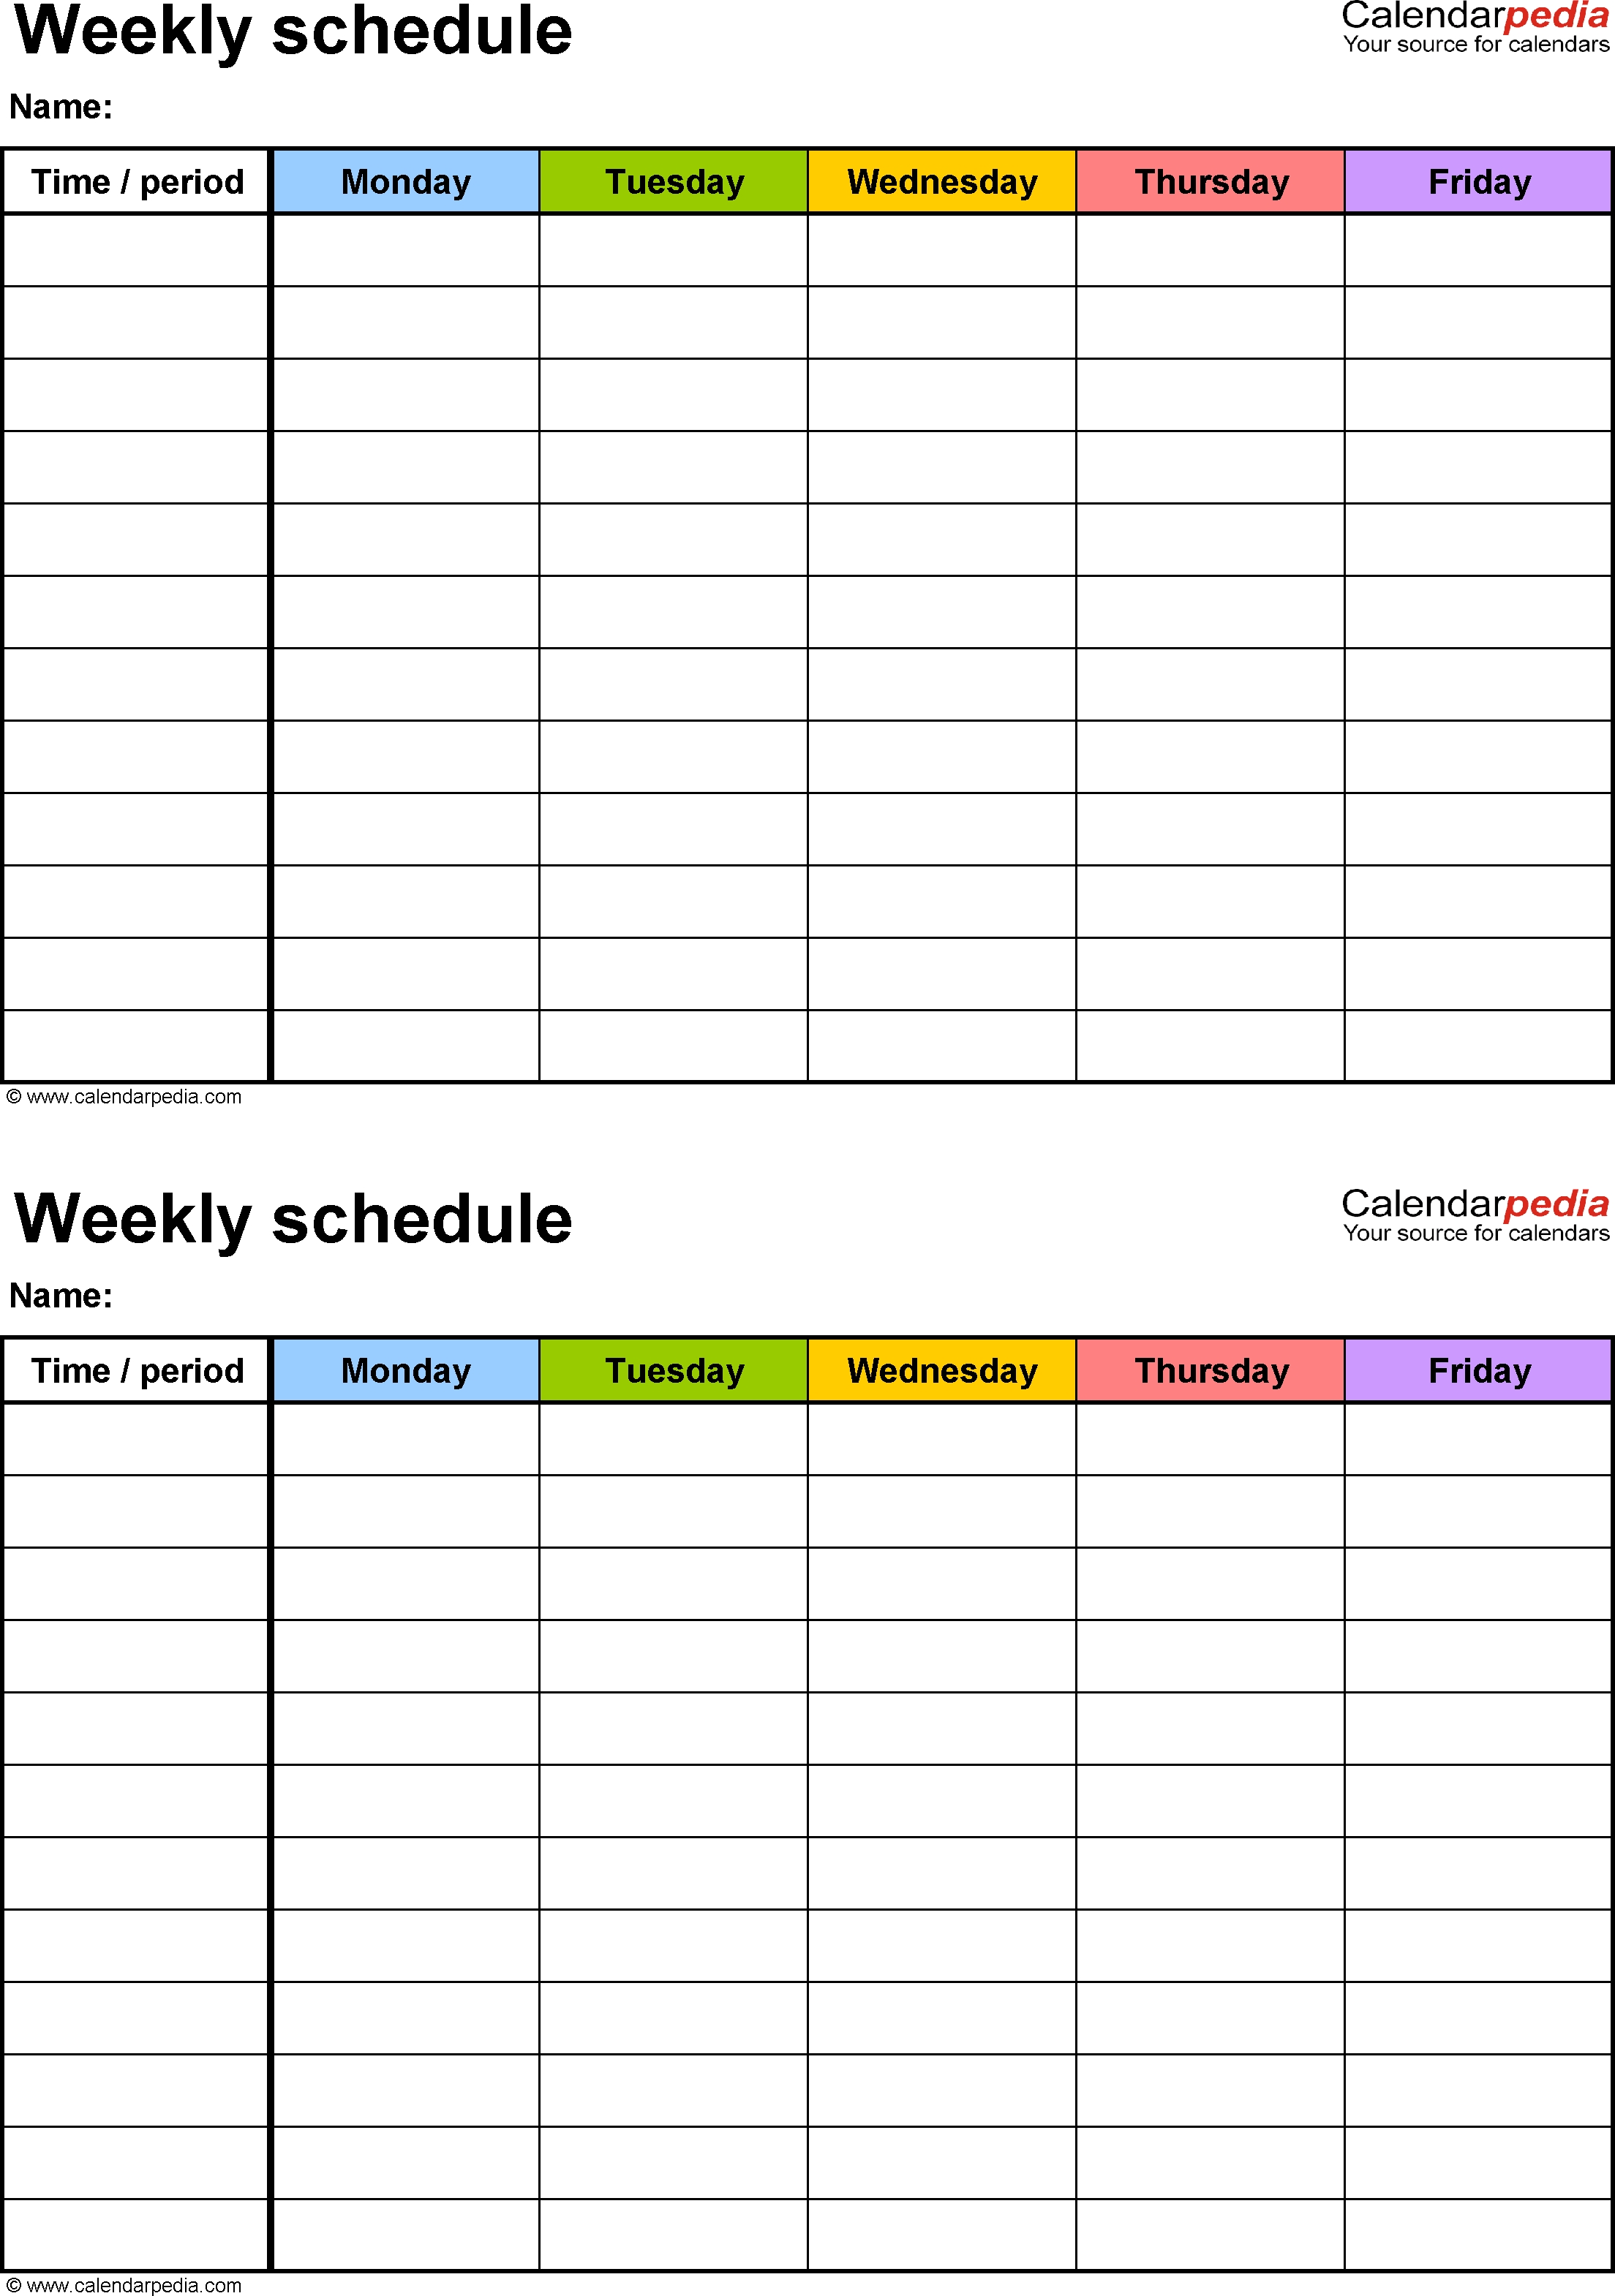 Free Weekly Schedule Templates For Word - 18 Templates regarding Printable Seven Day Calendar Print Out